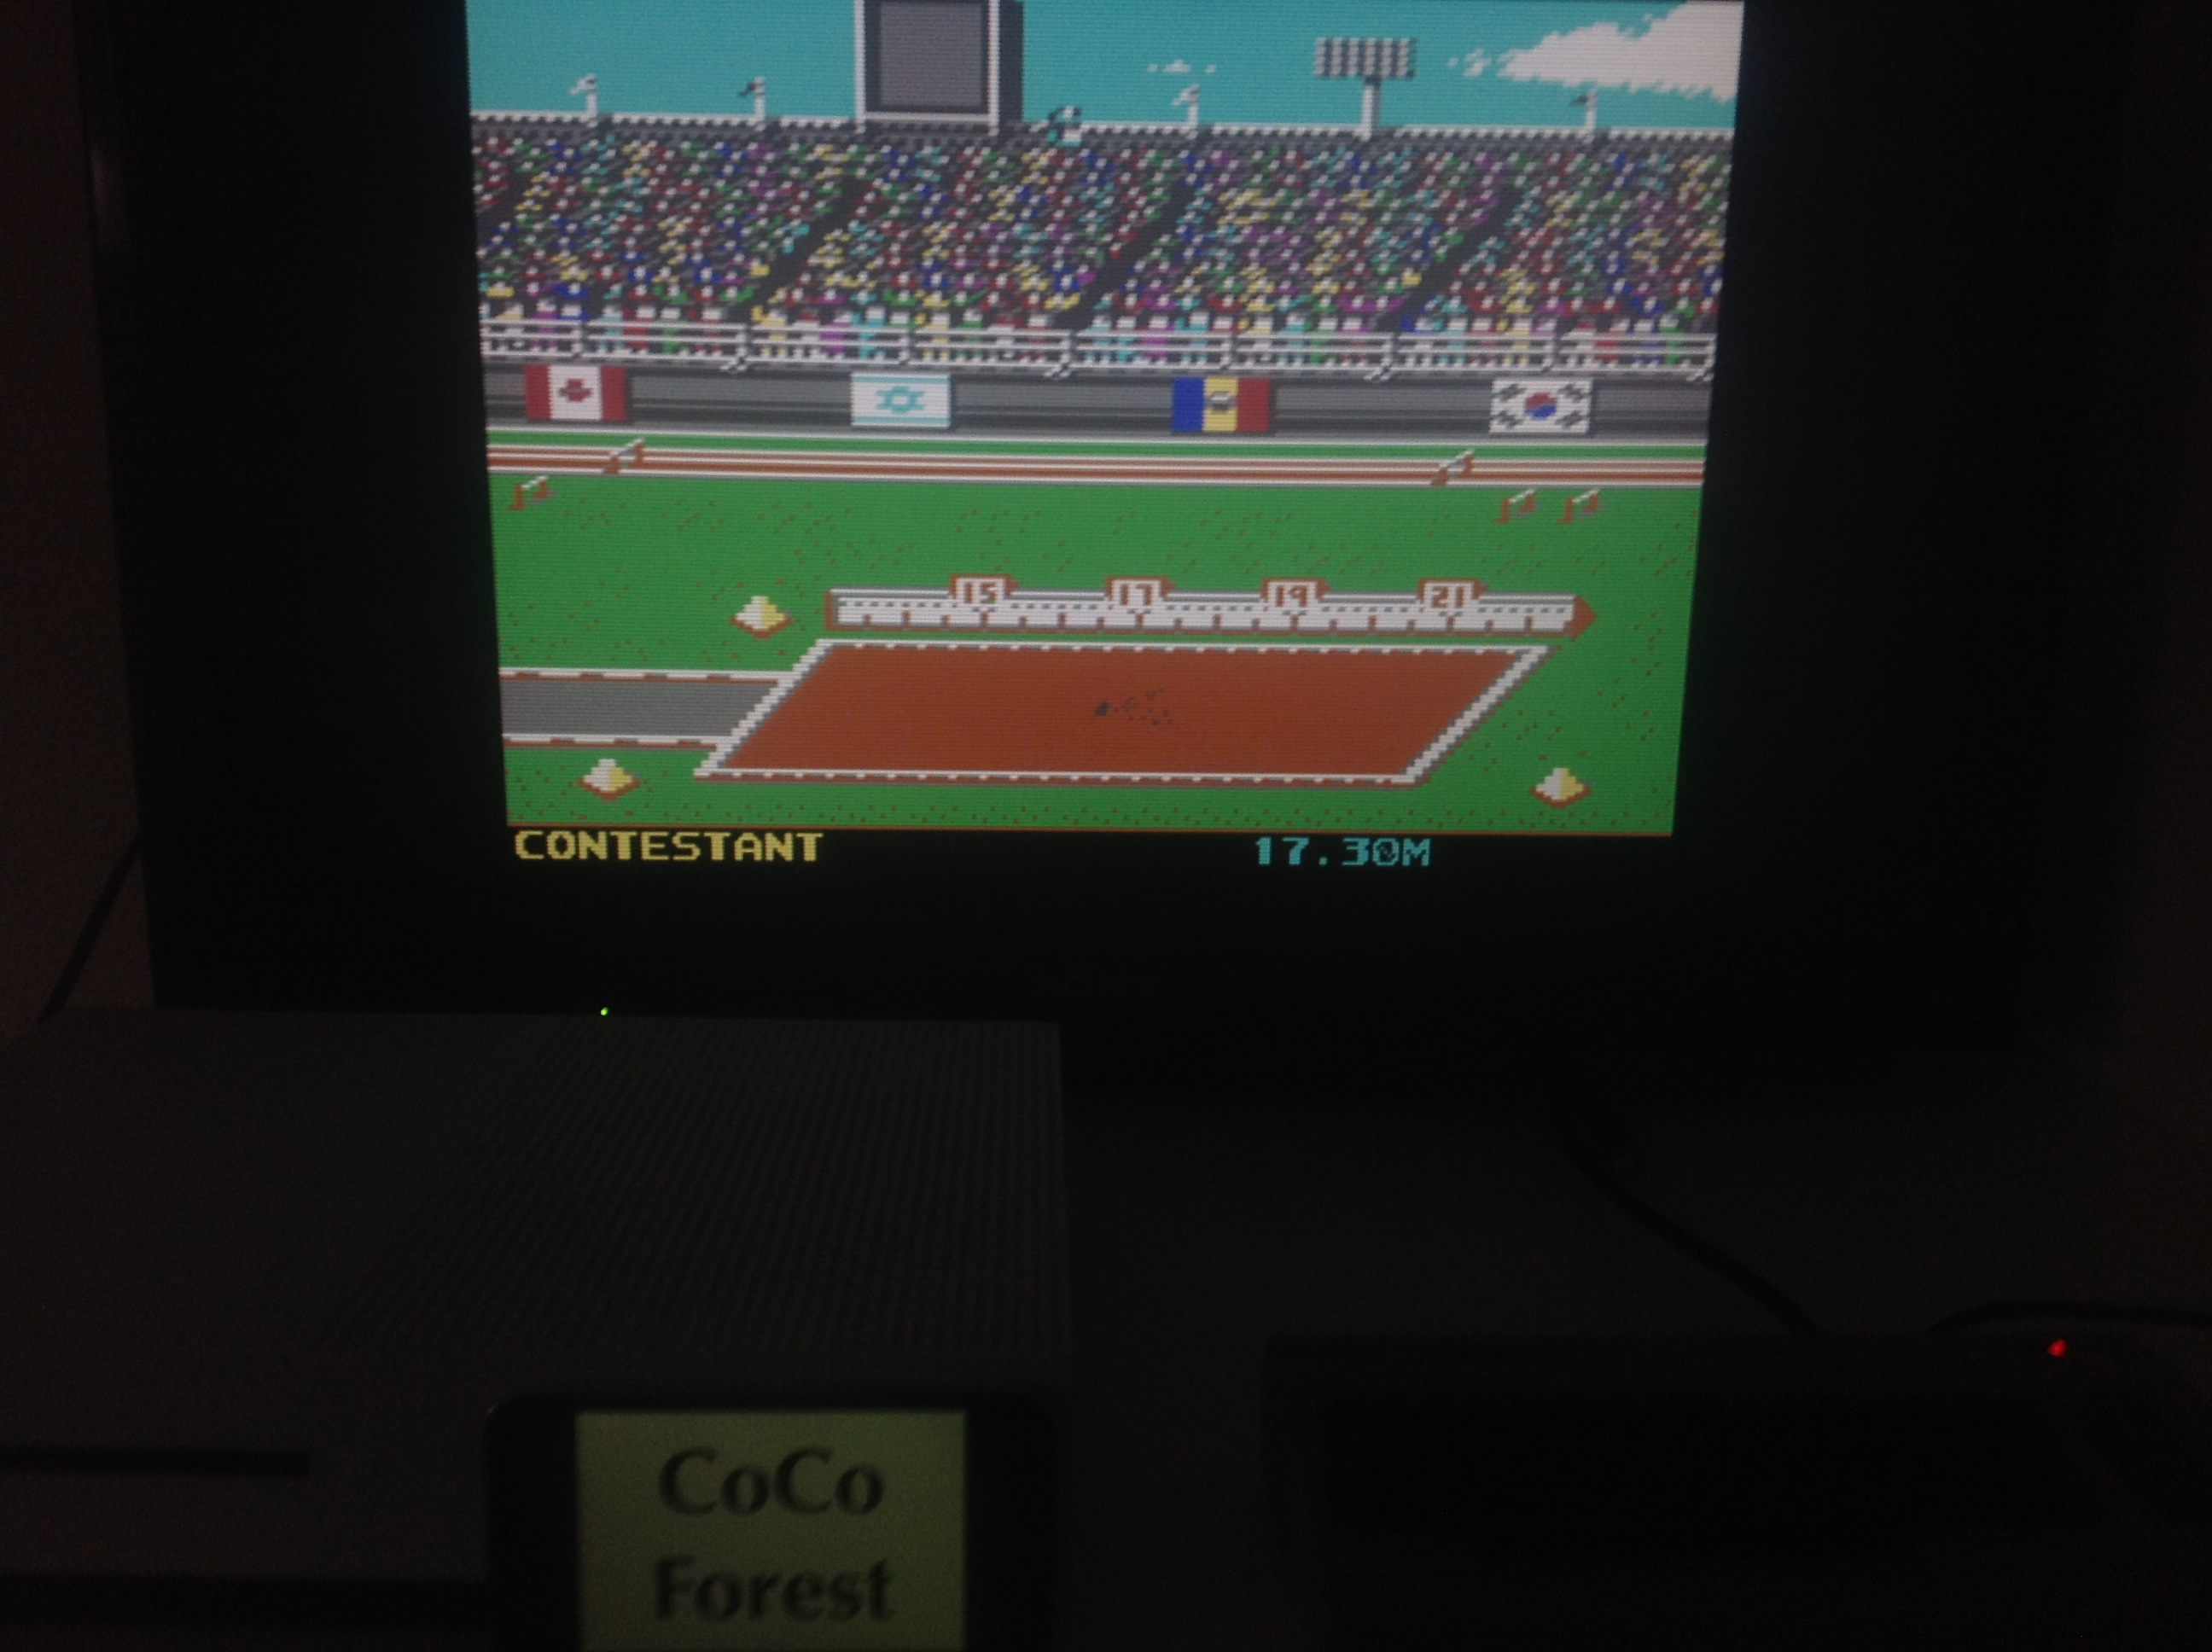 CoCoForest: Summer Games 2: Triple Jump [Centimeters] (Commodore 64 Emulated) 1,730 points on 2018-04-10 11:32:49